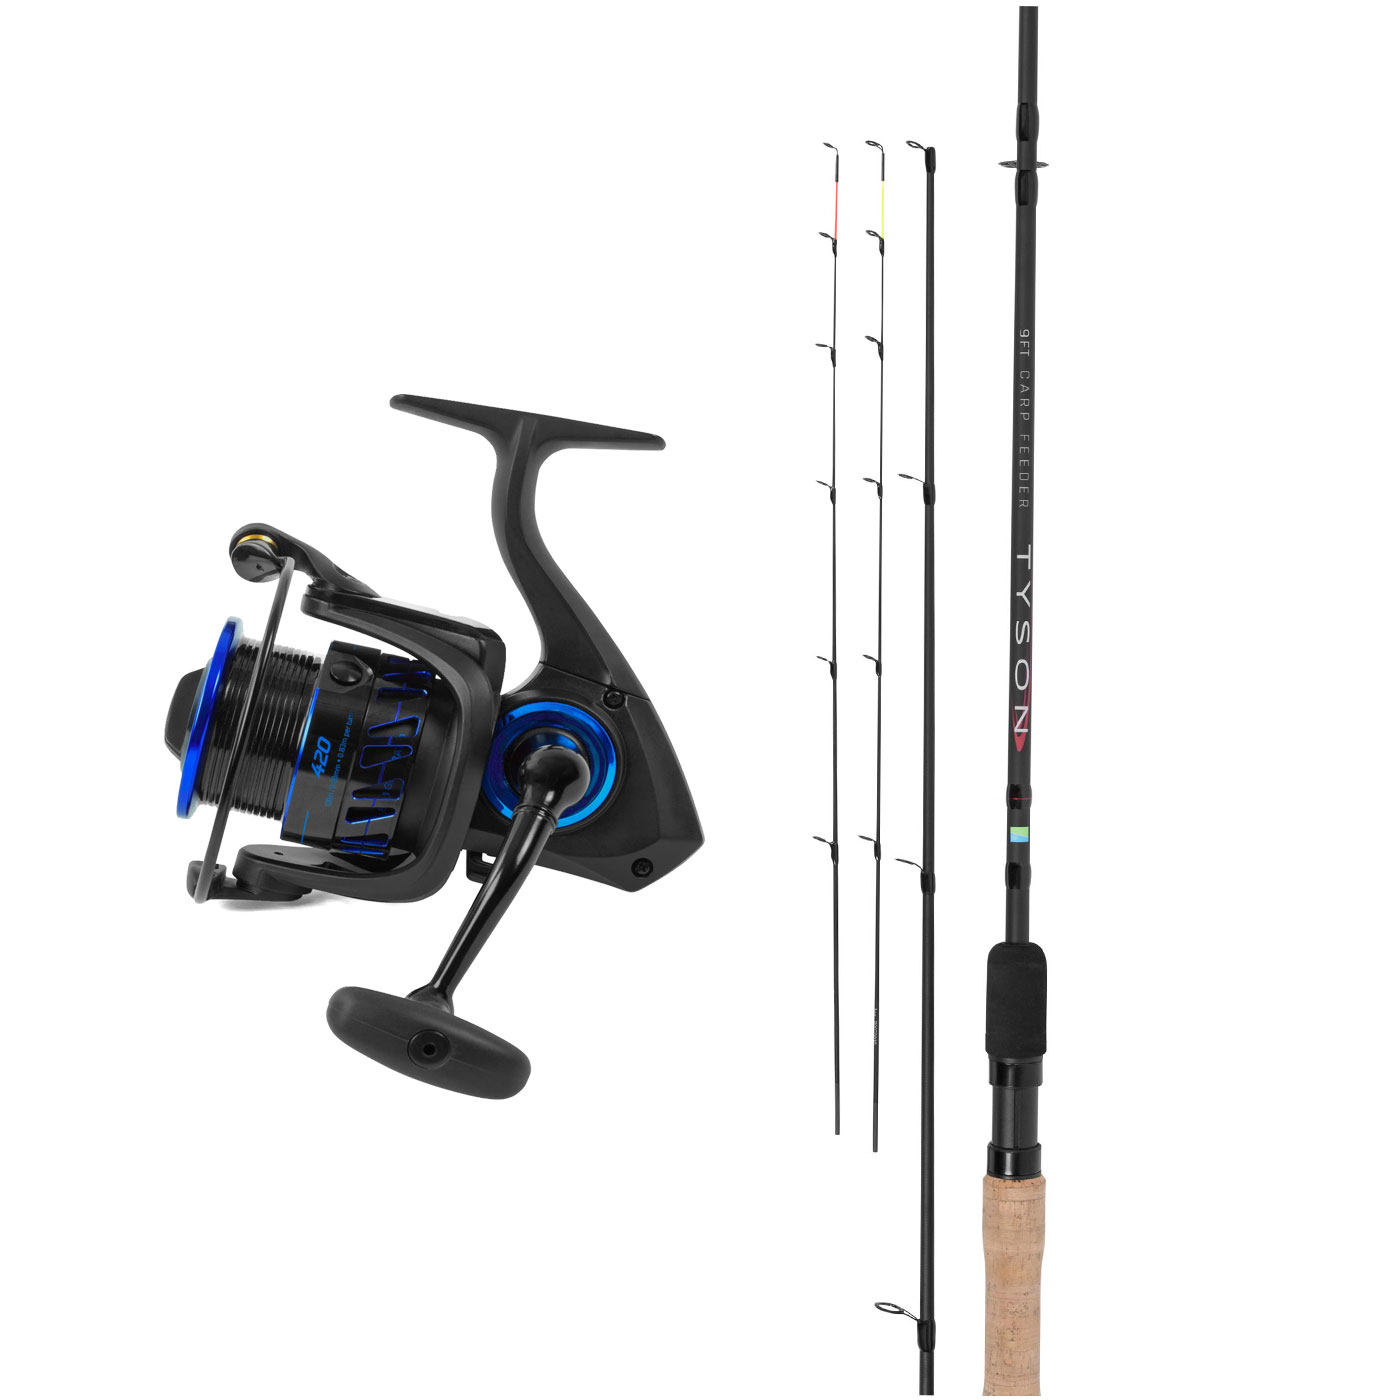 Preston Innovations Tyson Carp Feeder Rod + Inertia Reel Combo